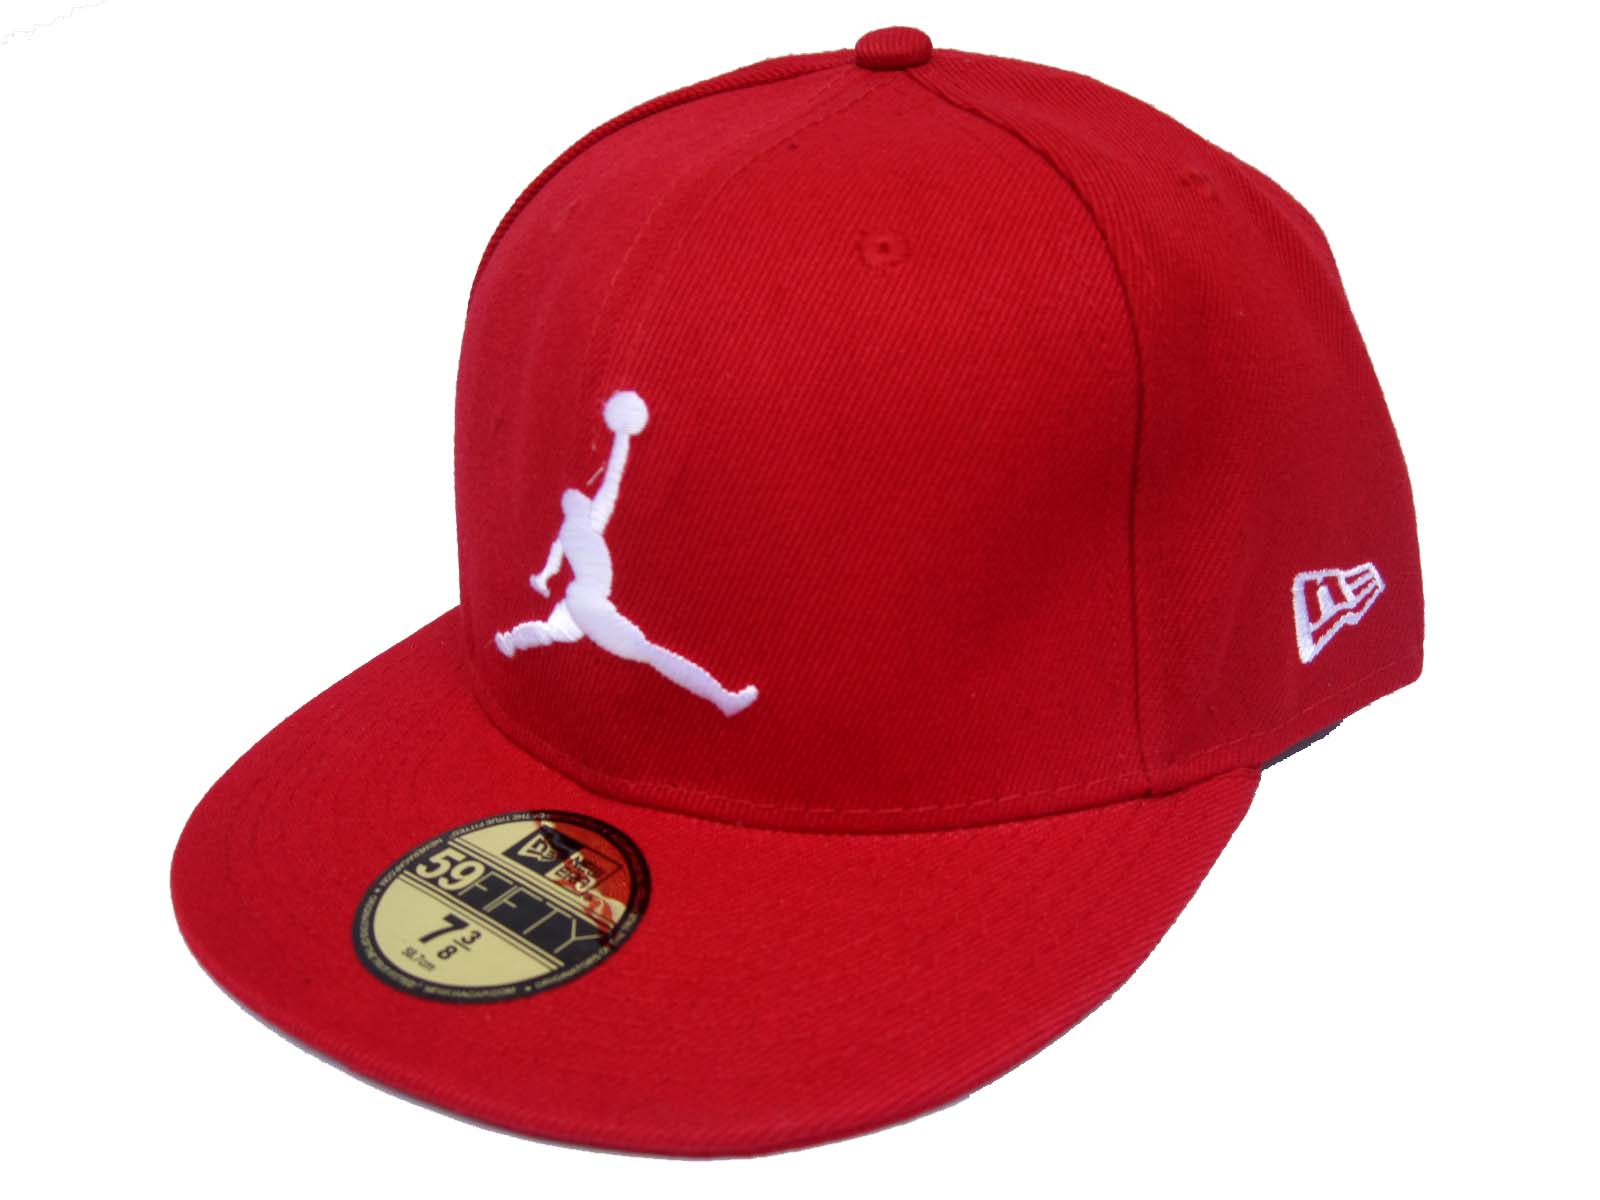 2be86b7956c3c ... snapbacks or dad hats. Camps are most popular in skate brands such as  Supreme or Palace. They have a large amount of variety and many different  ...